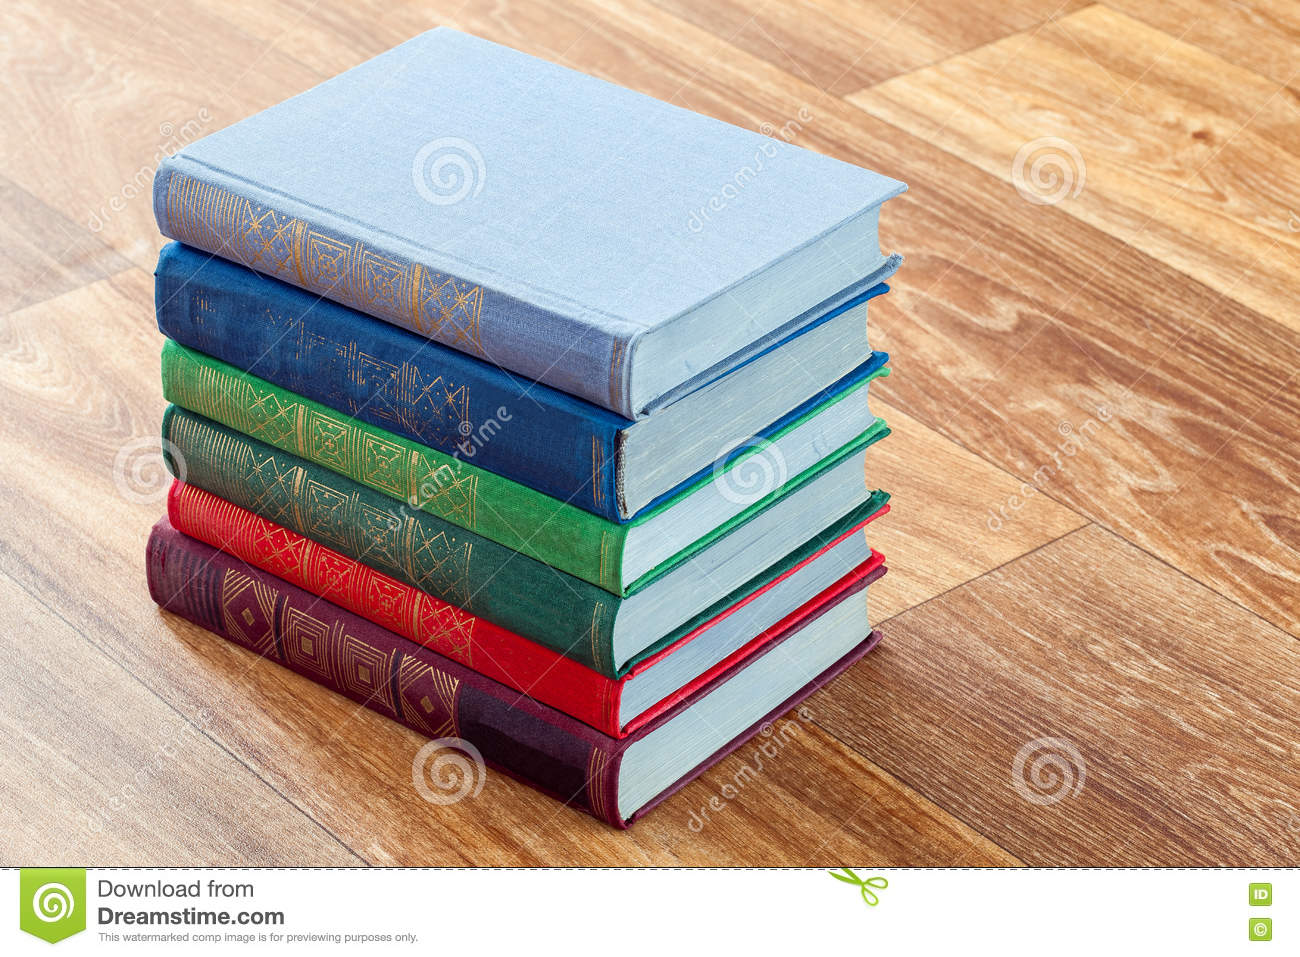 The Lying Multi-colored Books On A Wooden Table. Stock Image - Image ...